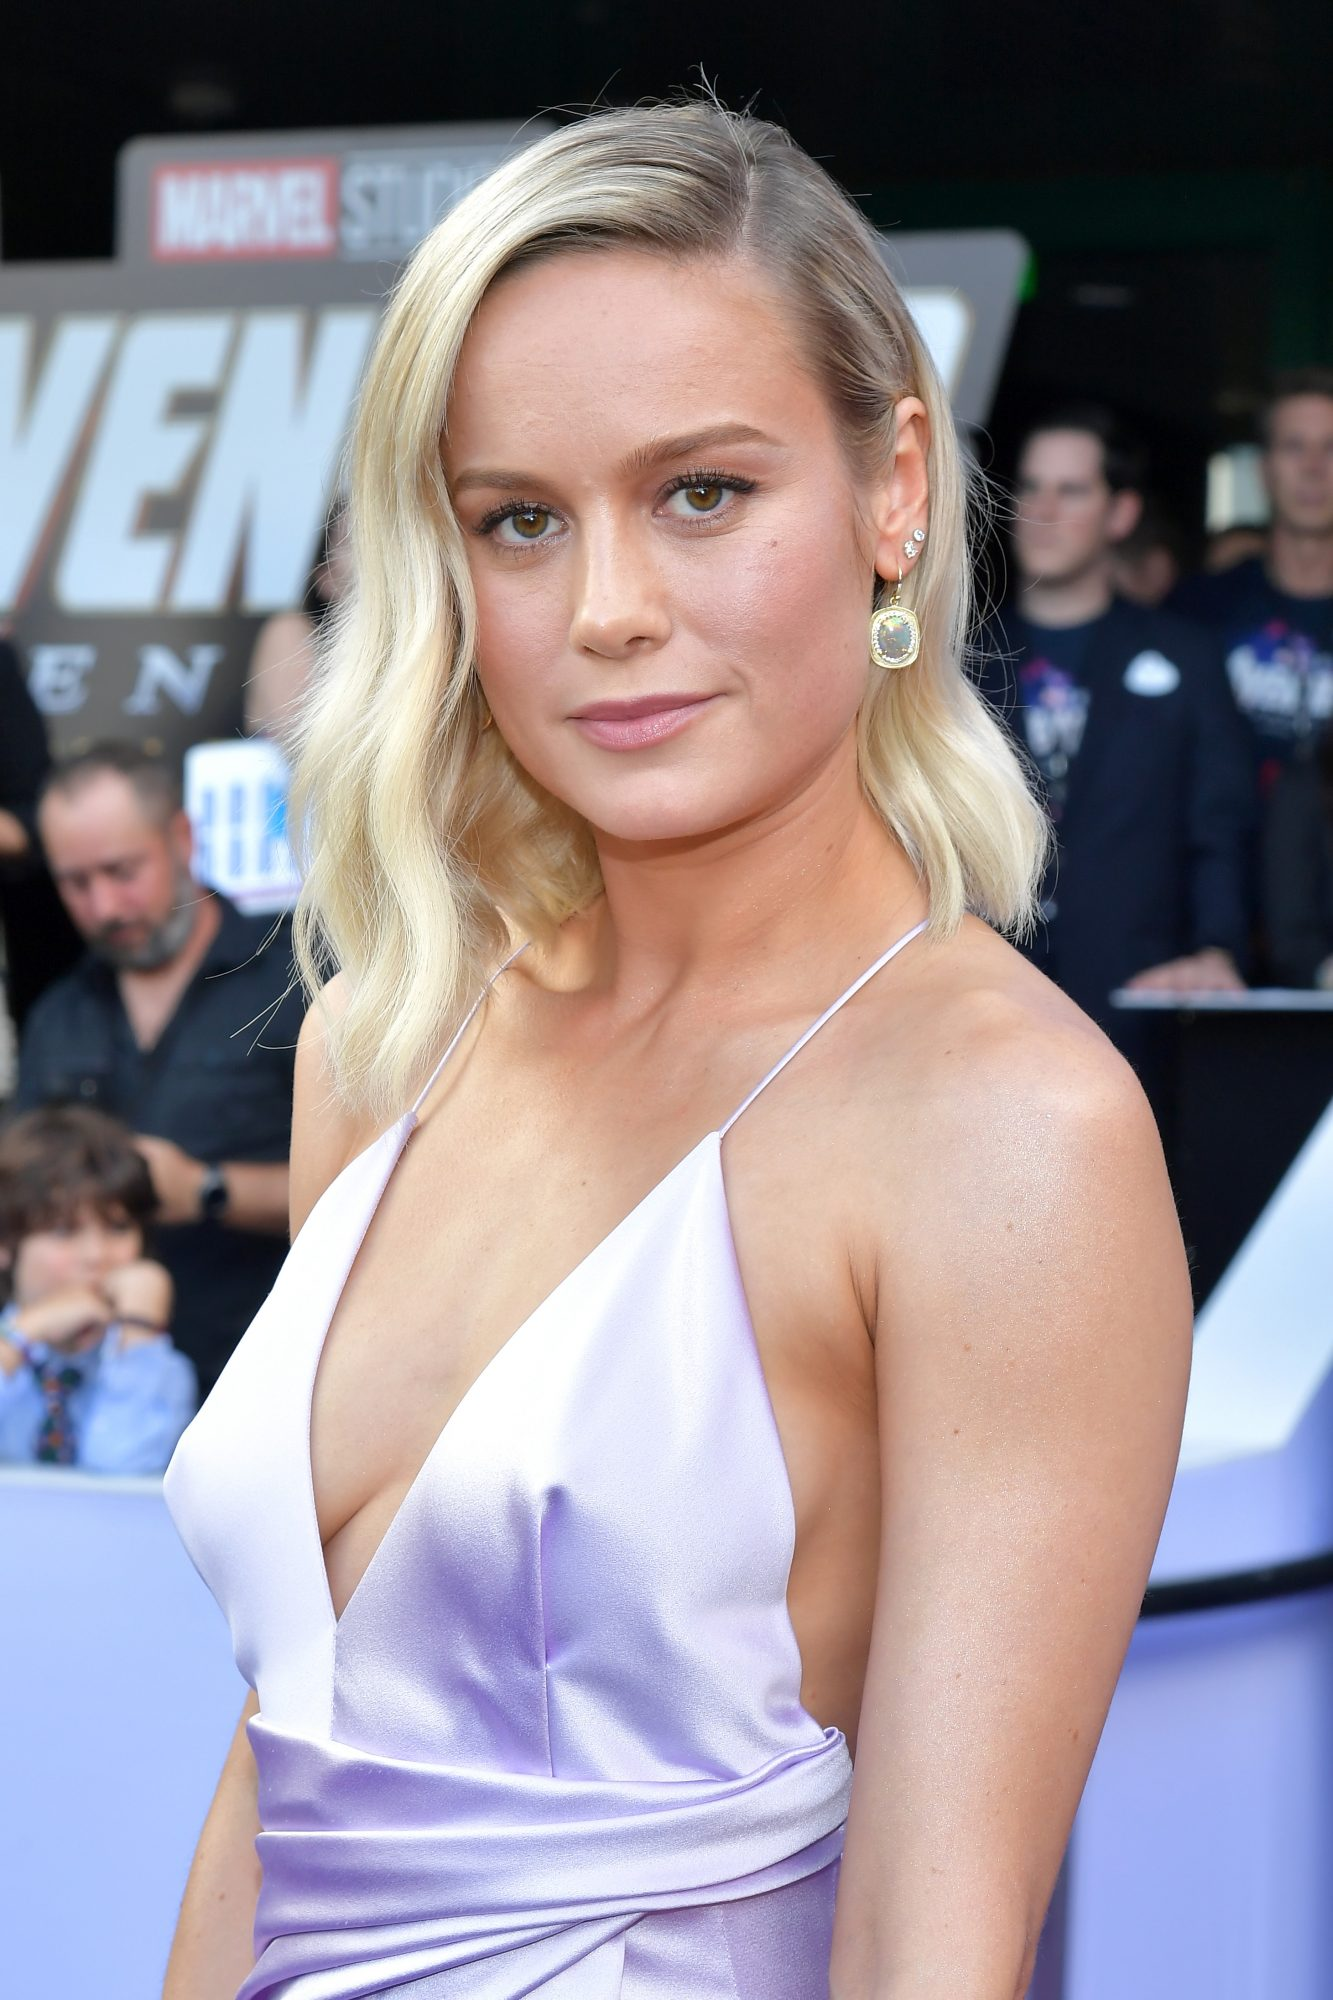 """Brie Larson attends the world premiere of Walt Disney Studios Motion Pictures """"Avengers: Endgame"""" at the Los Angeles Convention Center on April 22, 2019 in Los Angeles, California.  (Photo by Amy Sussman/Getty Images)"""